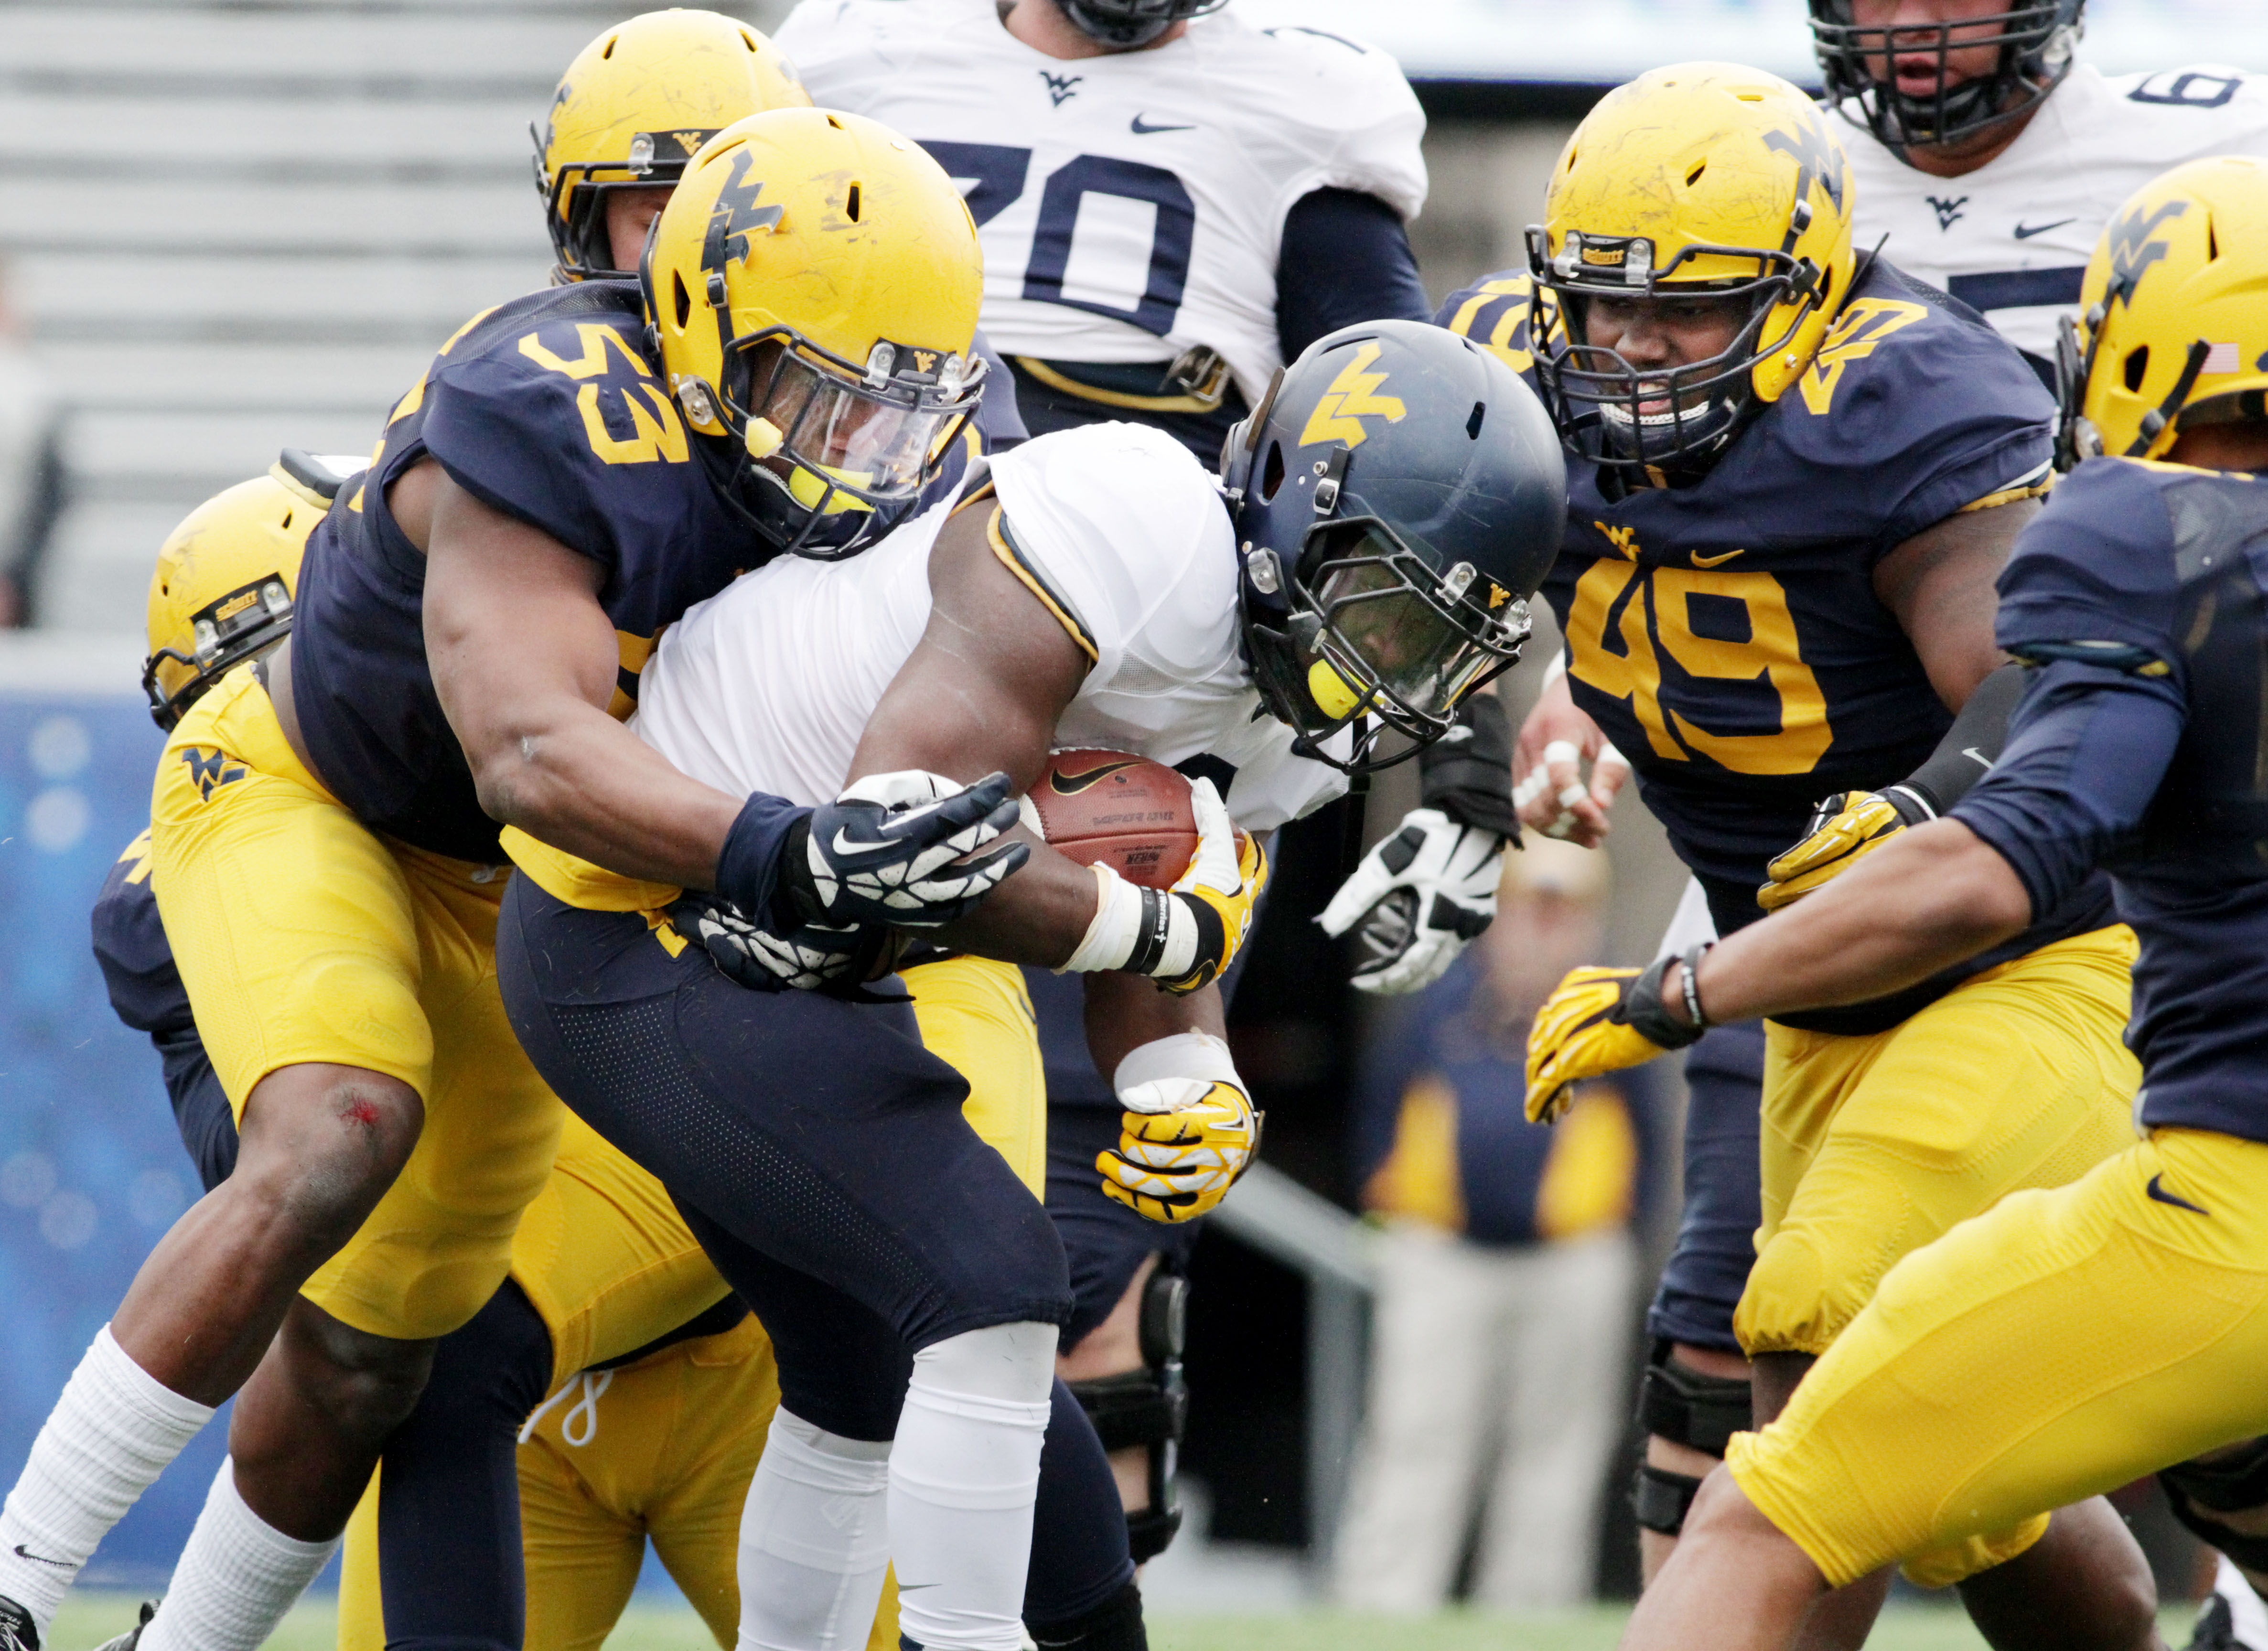 West Virginia linebacker Xavier Preston (53) tackles West Virginia running back Donte Thomas-Williams (8) during a spring NCAA college football scrimmage, Saturday, March, 25, 2015, in Morgantown, W.Va. (AP Photo/Raymond Thompson)